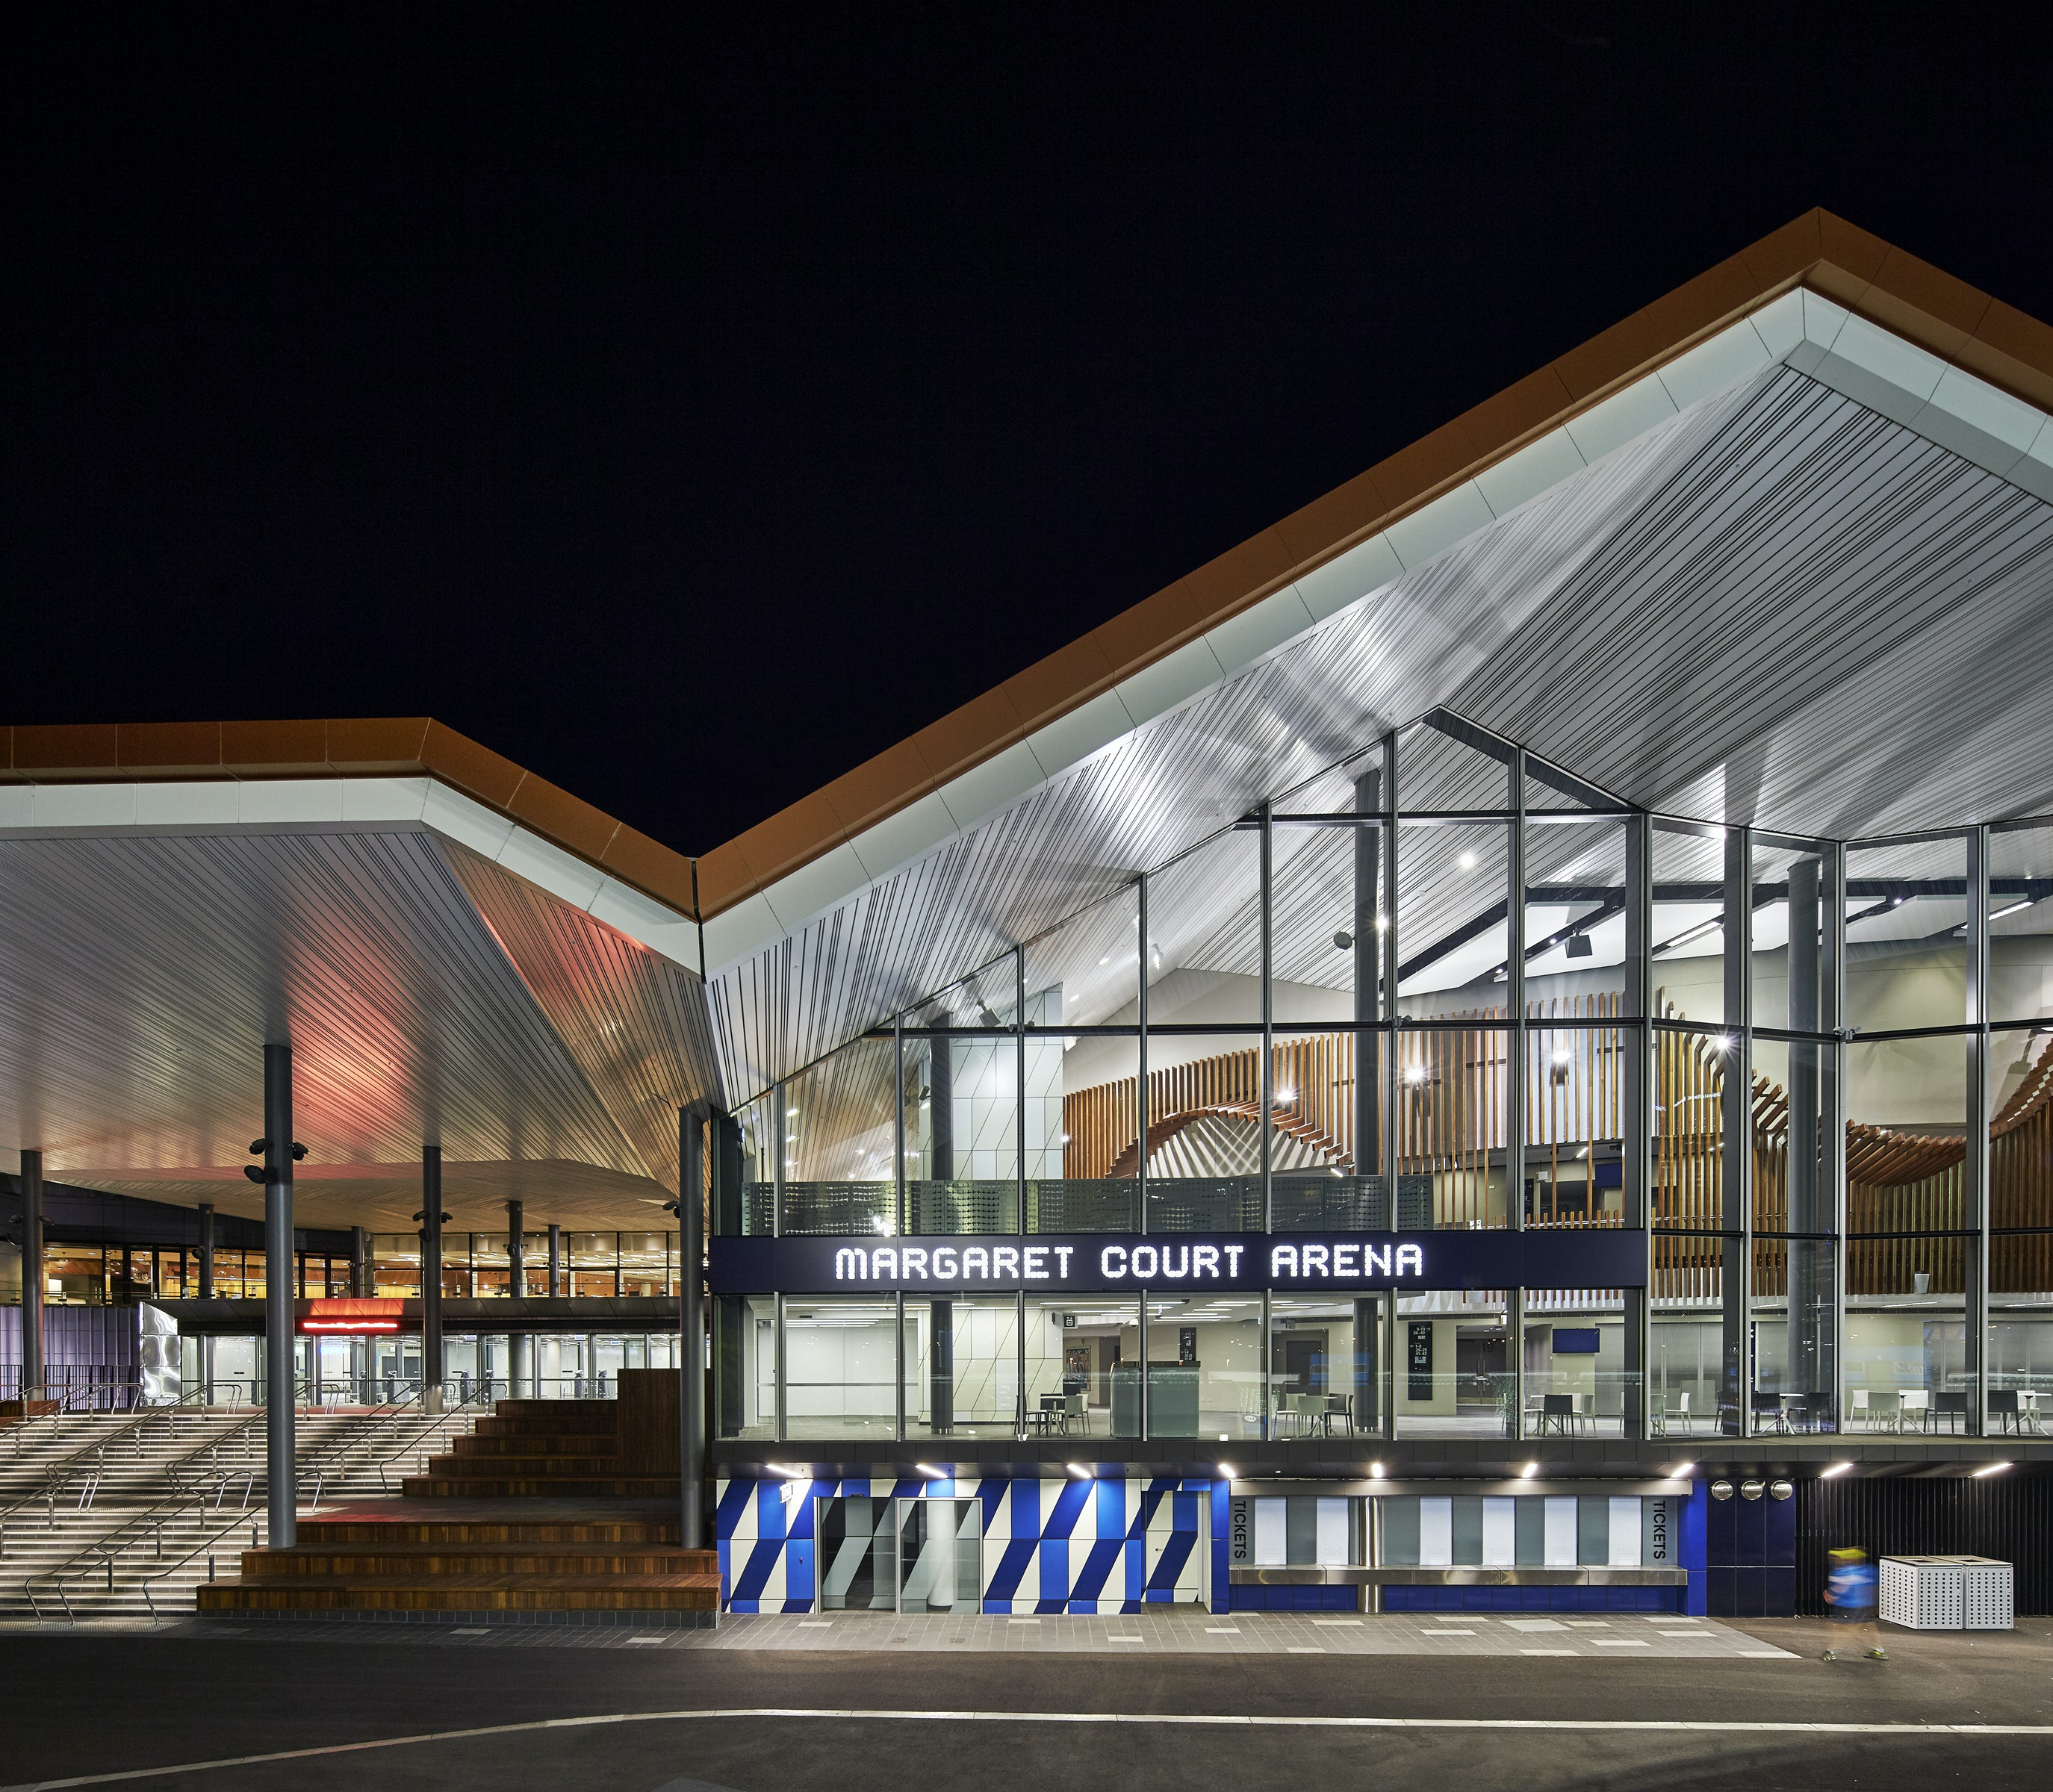 Margaret Court Arena on Architizer